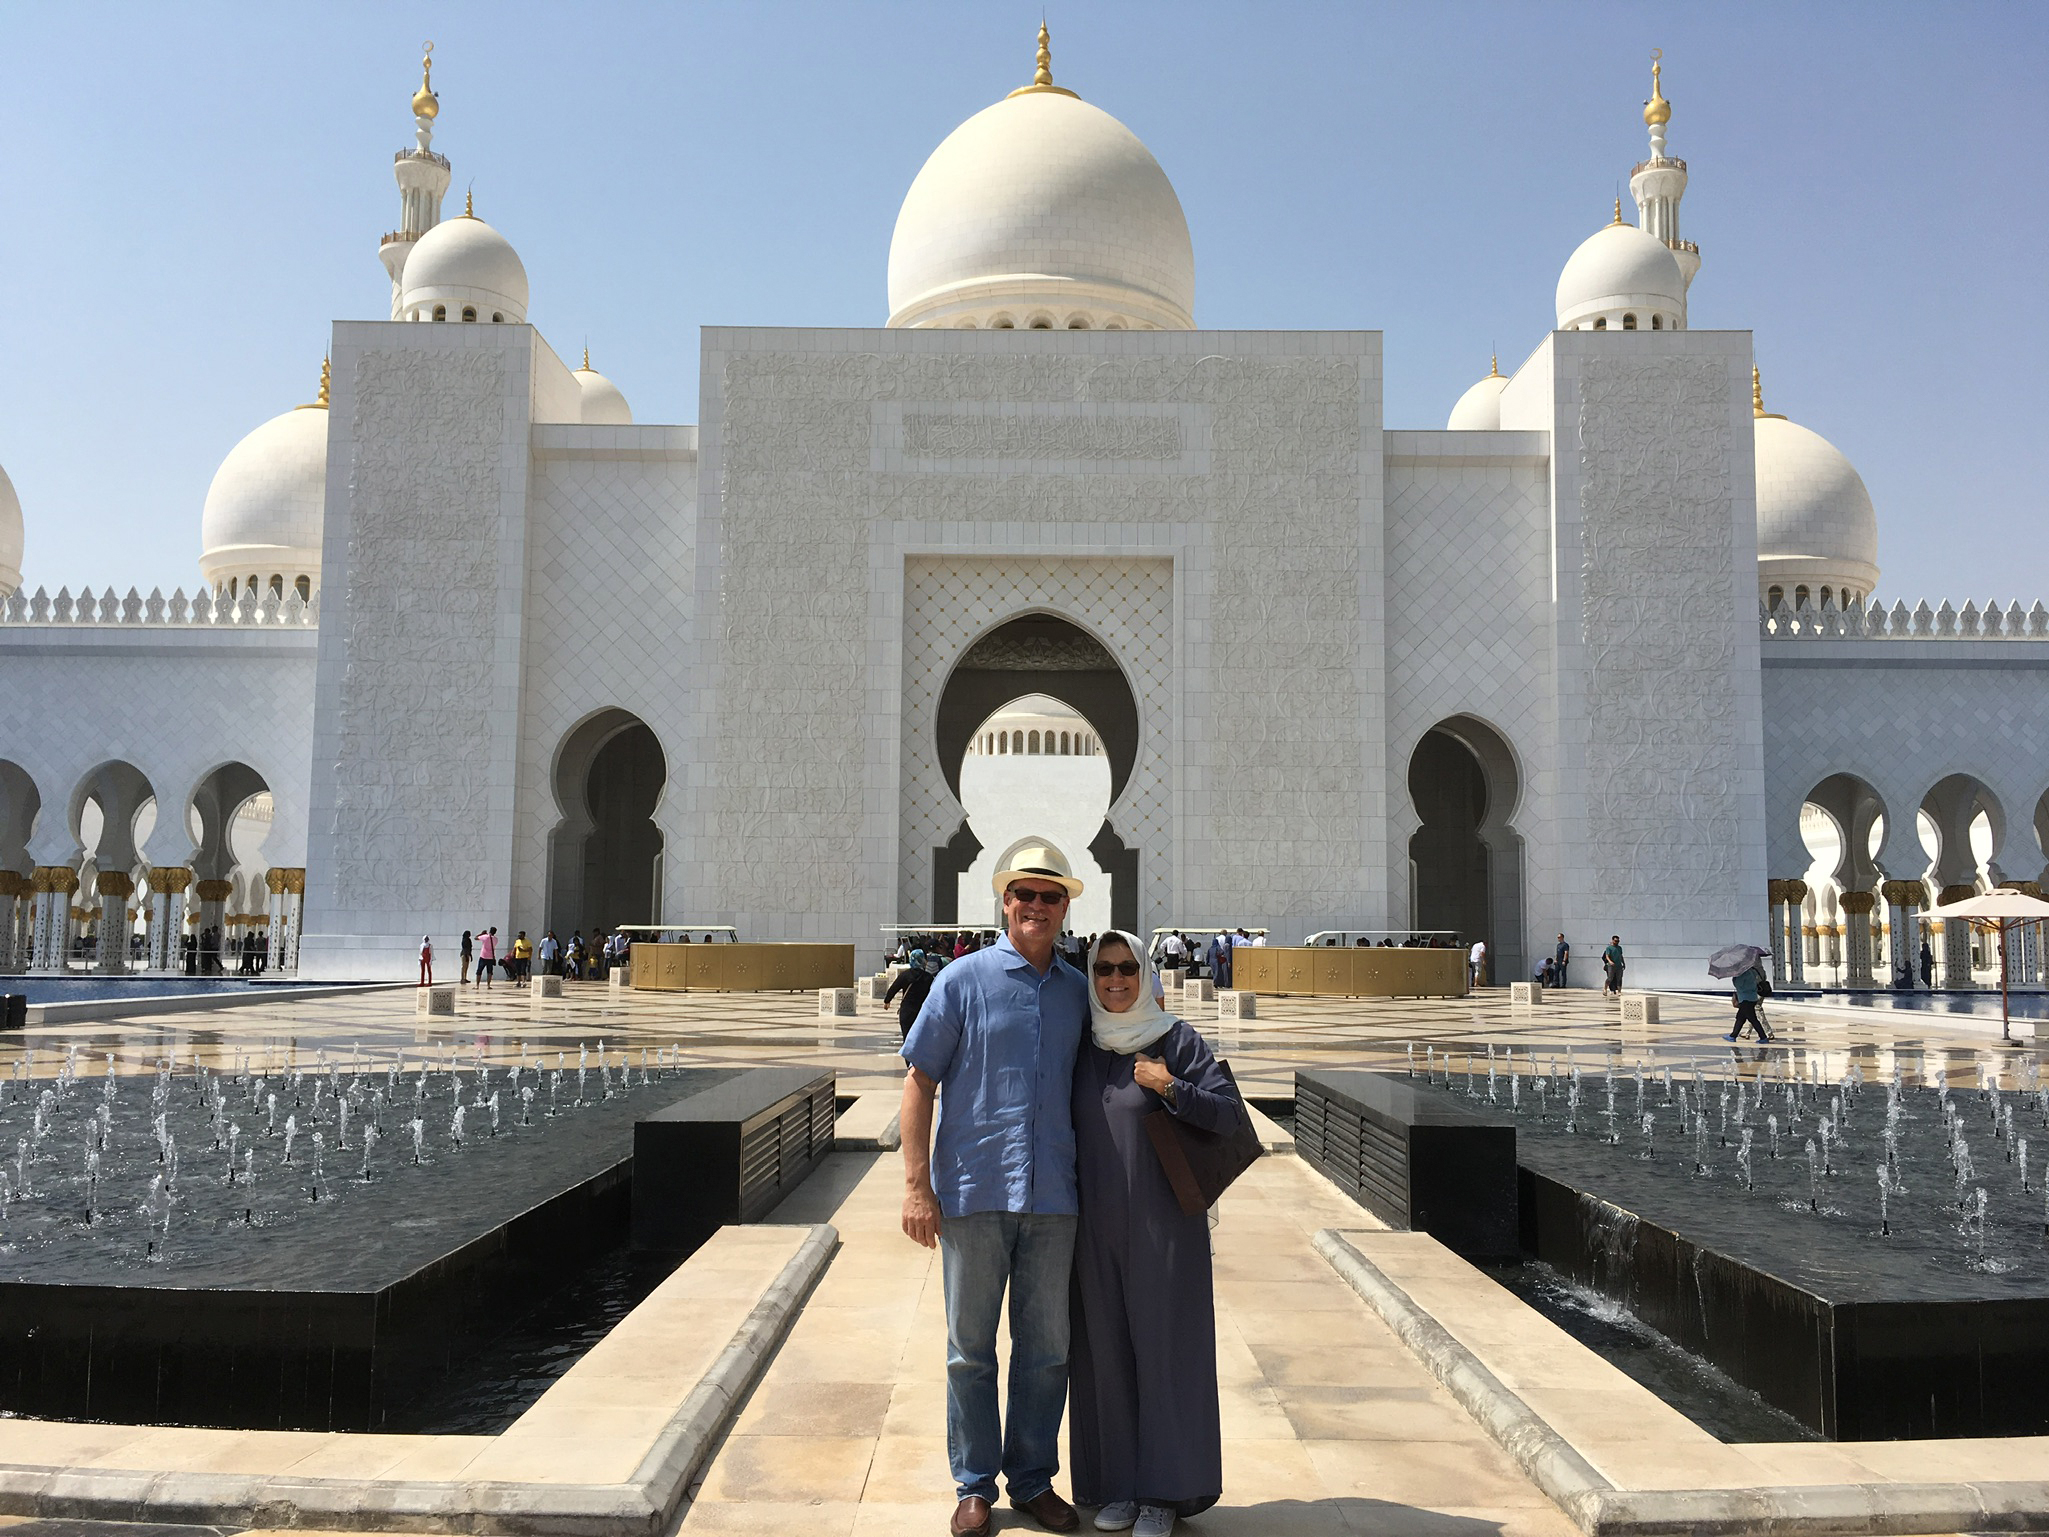 Dona Dower and her husband in front of The Grand Mosque in Abu Dhabi